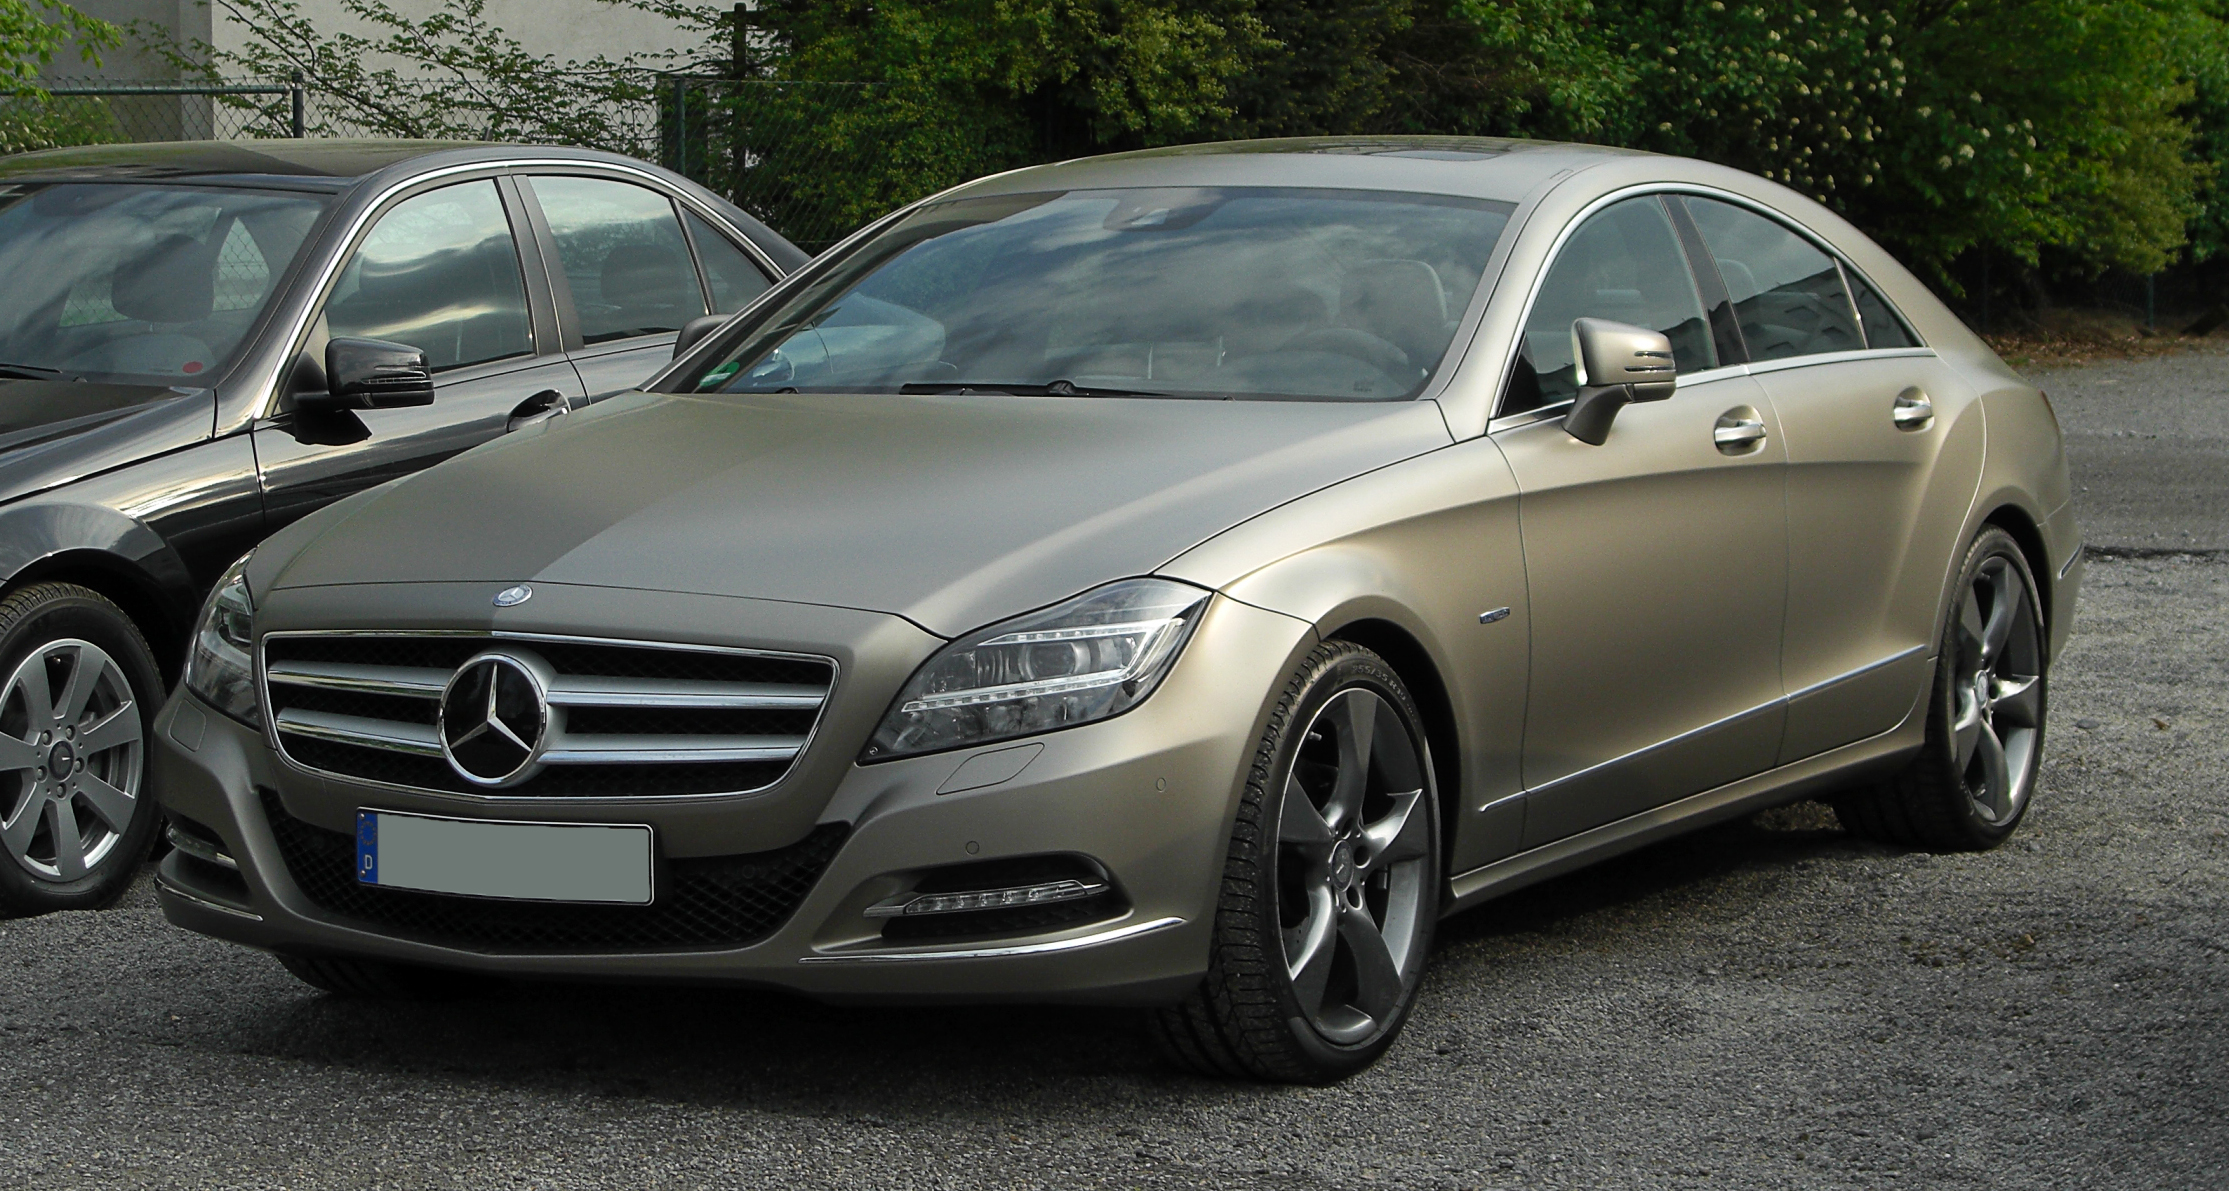 CLS 350 BlueEFFICIENCY Edition 1 2011 2014